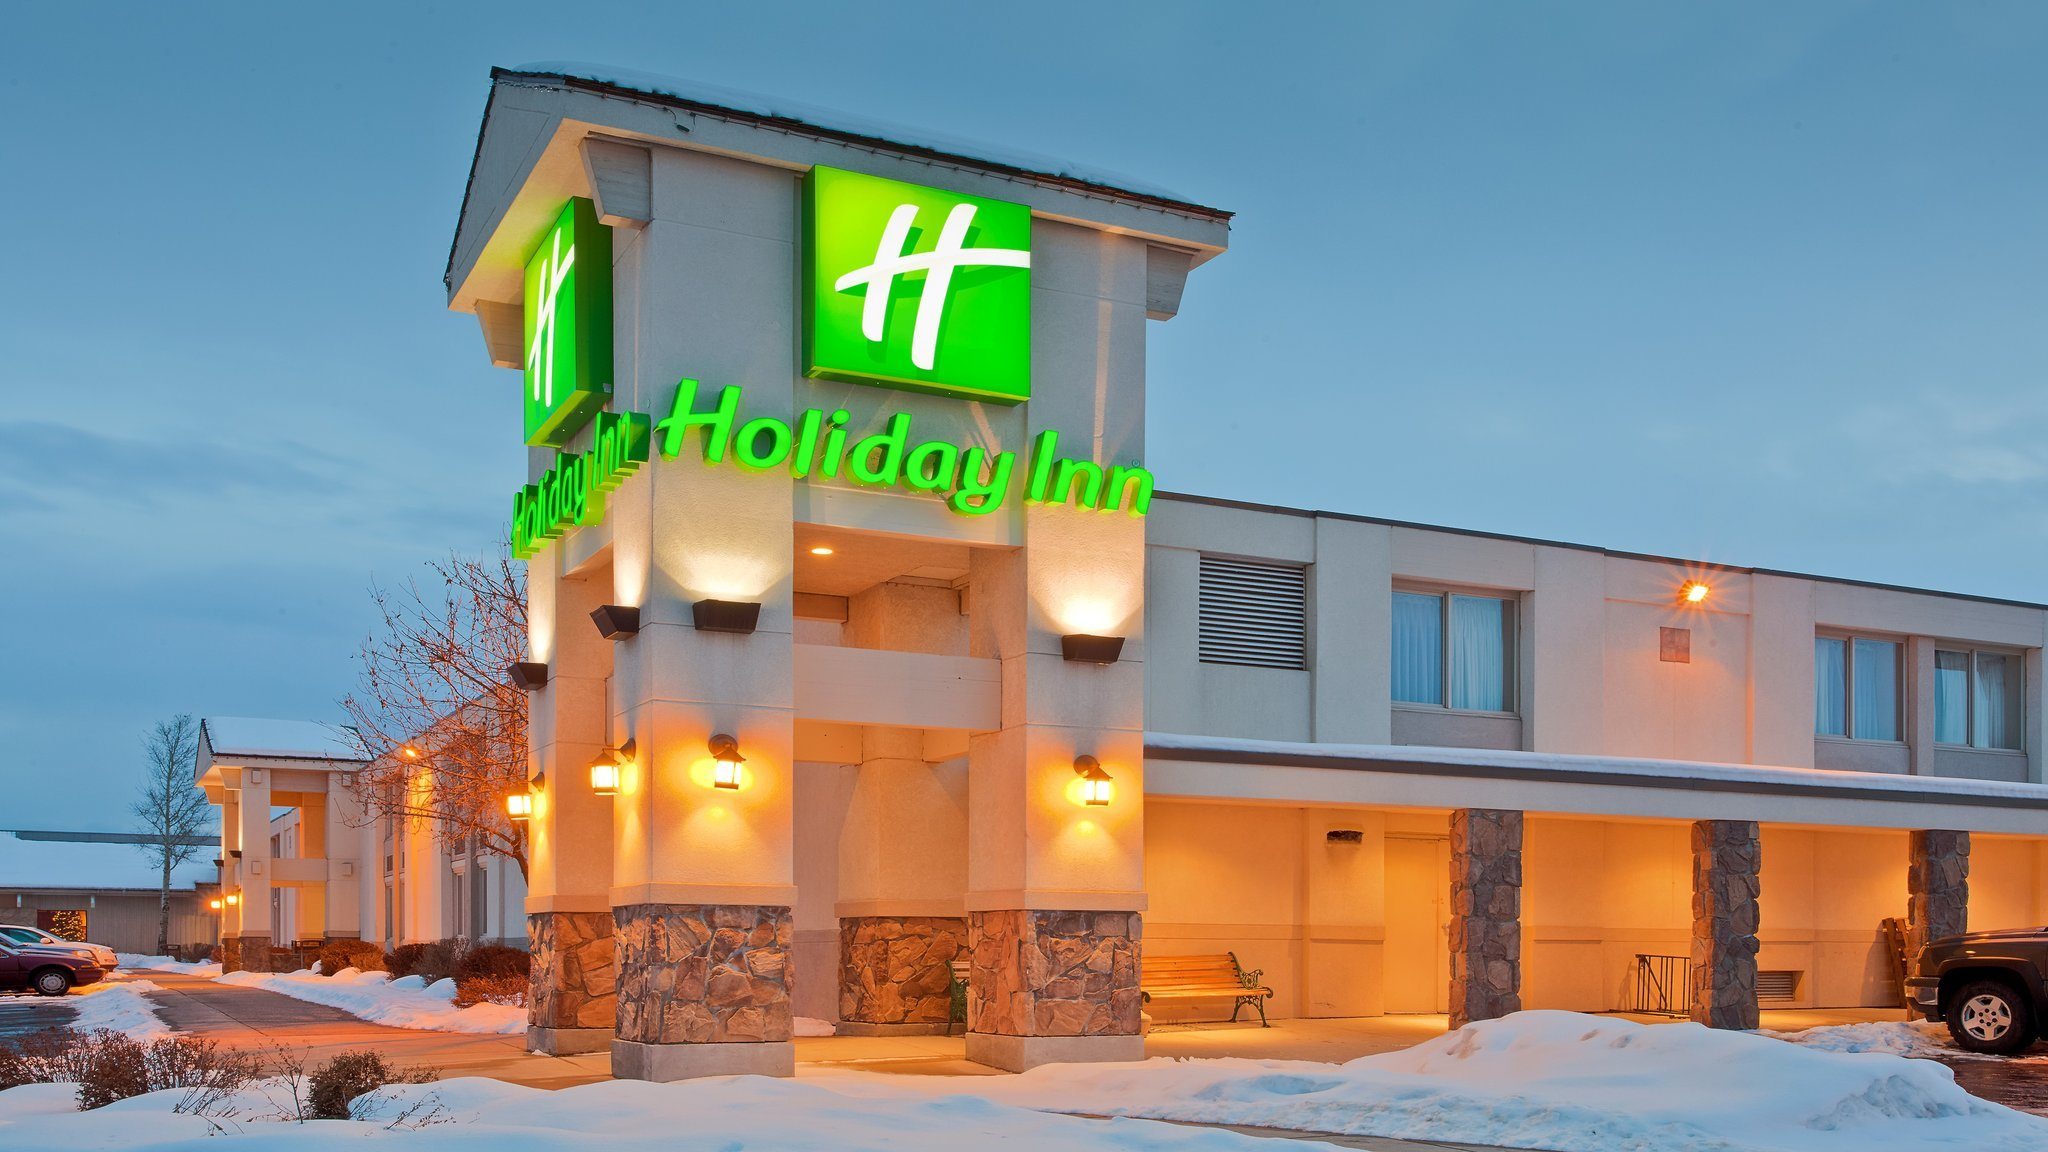 Holiday Inn Bozeman